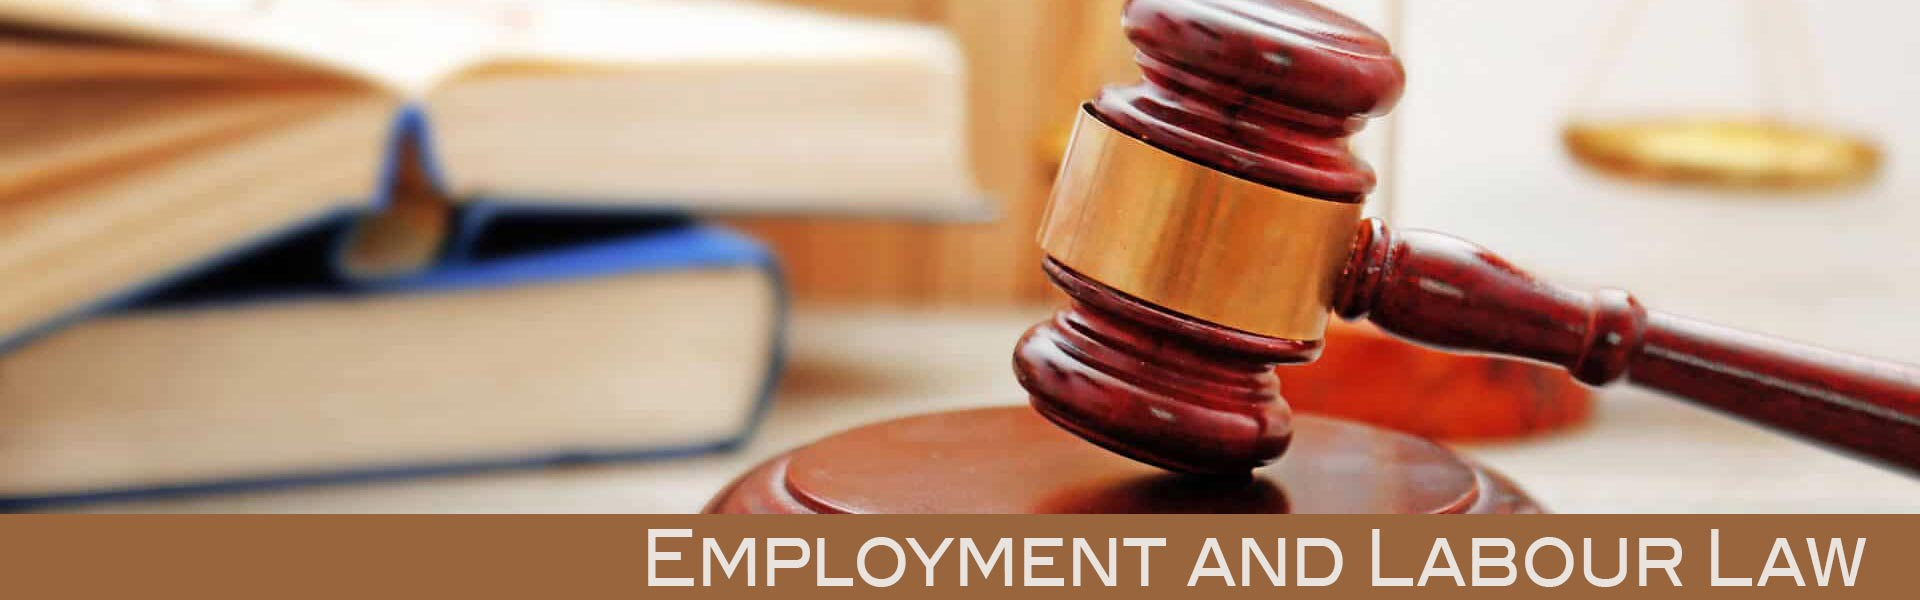 employment and labour law south africa